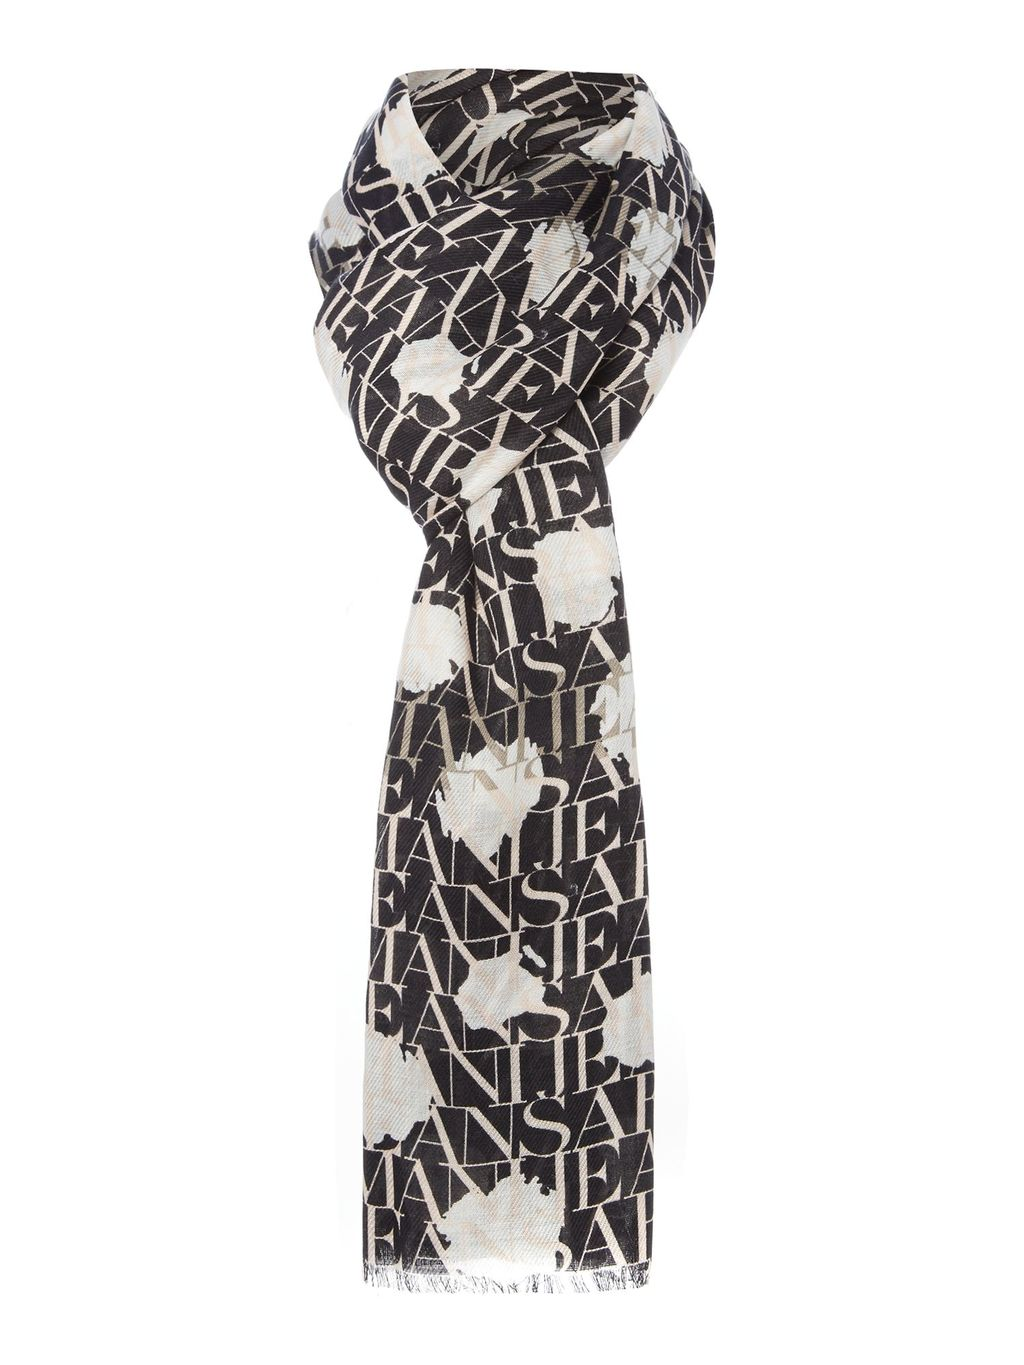 Spot Logo Scarf, Black - secondary colour: white; predominant colour: black; occasions: casual; type of pattern: large; style: regular; size: standard; material: fabric; pattern: patterned/print; season: s/s 2016; wardrobe: highlight